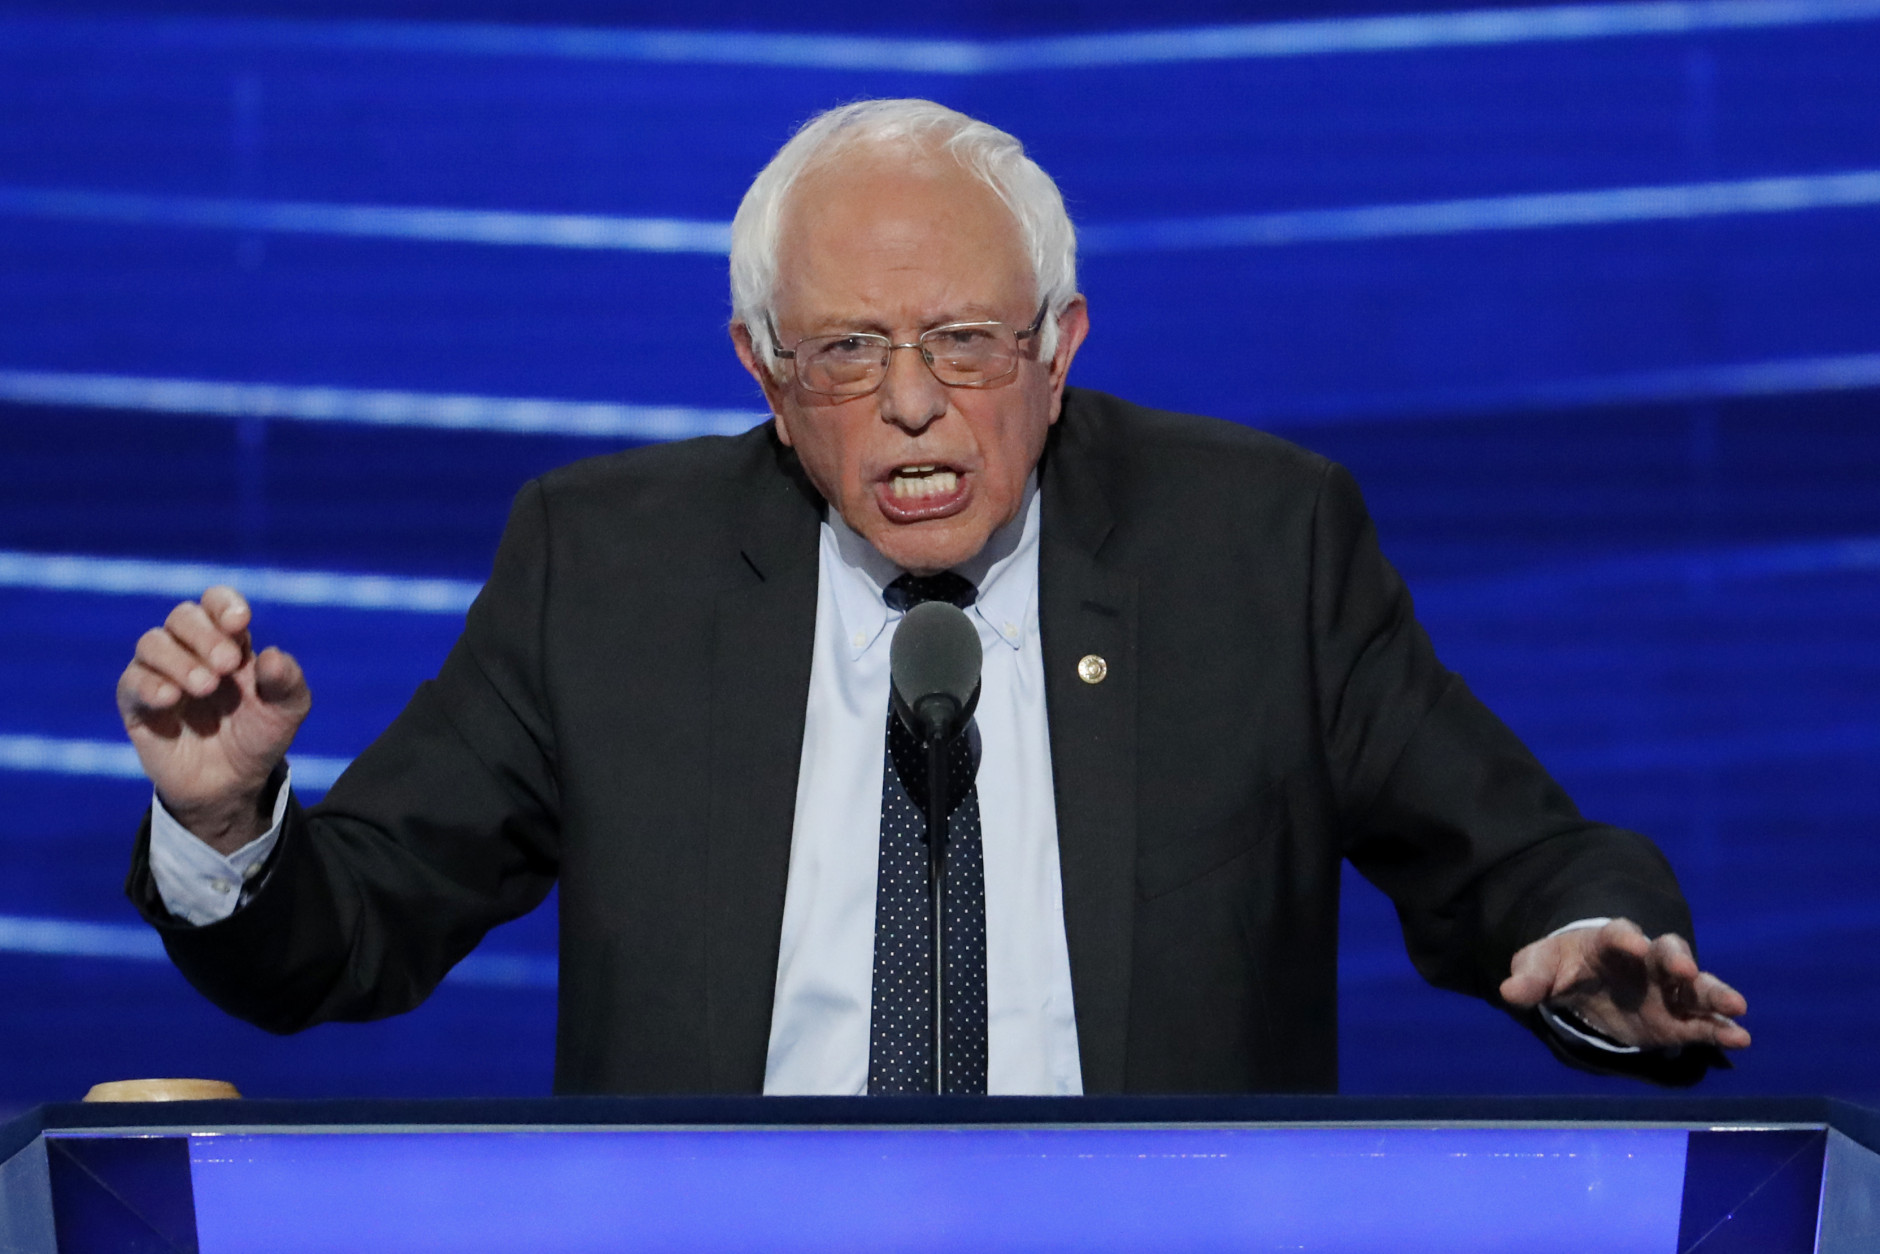 Former Democratic presidential candidate, Sen. Bernie Sanders, I-Vt., speaks during the first day of the Democratic National Convention in Philadelphia , Monday, July 25, 2016. (AP Photo/J. Scott Applewhite)